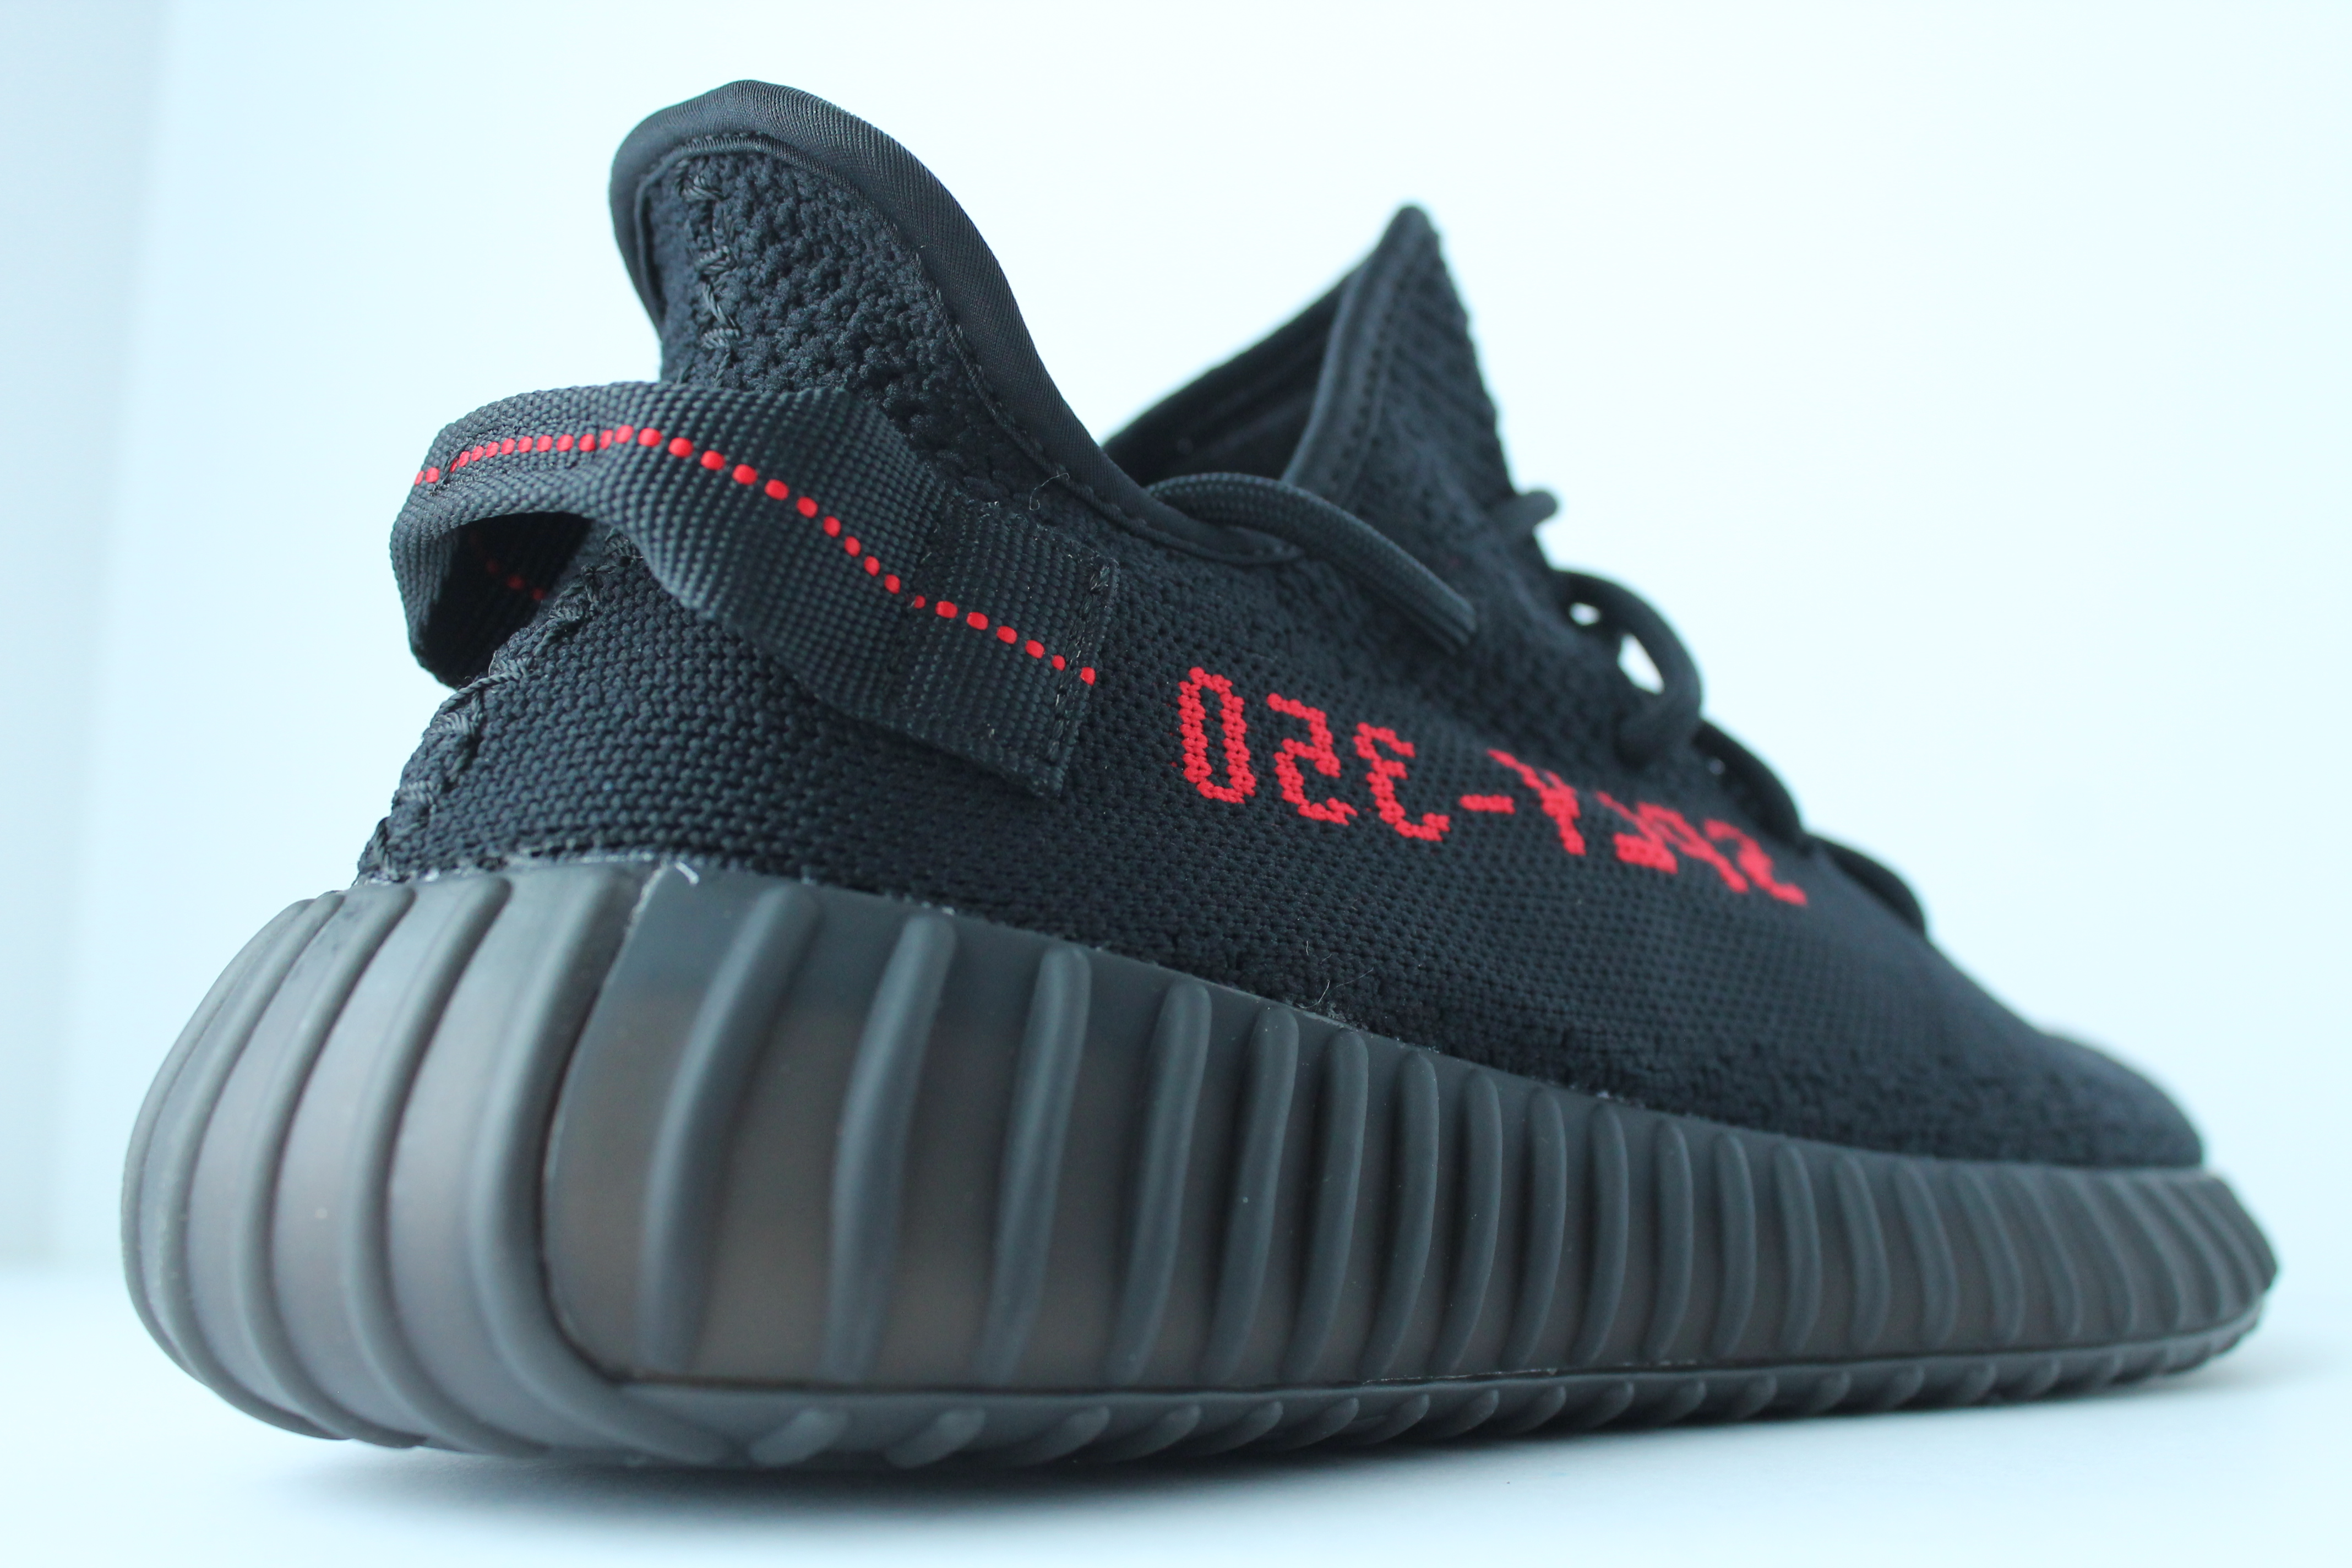 YEEZY 350 V2 BRED FOR RETAIL !!!